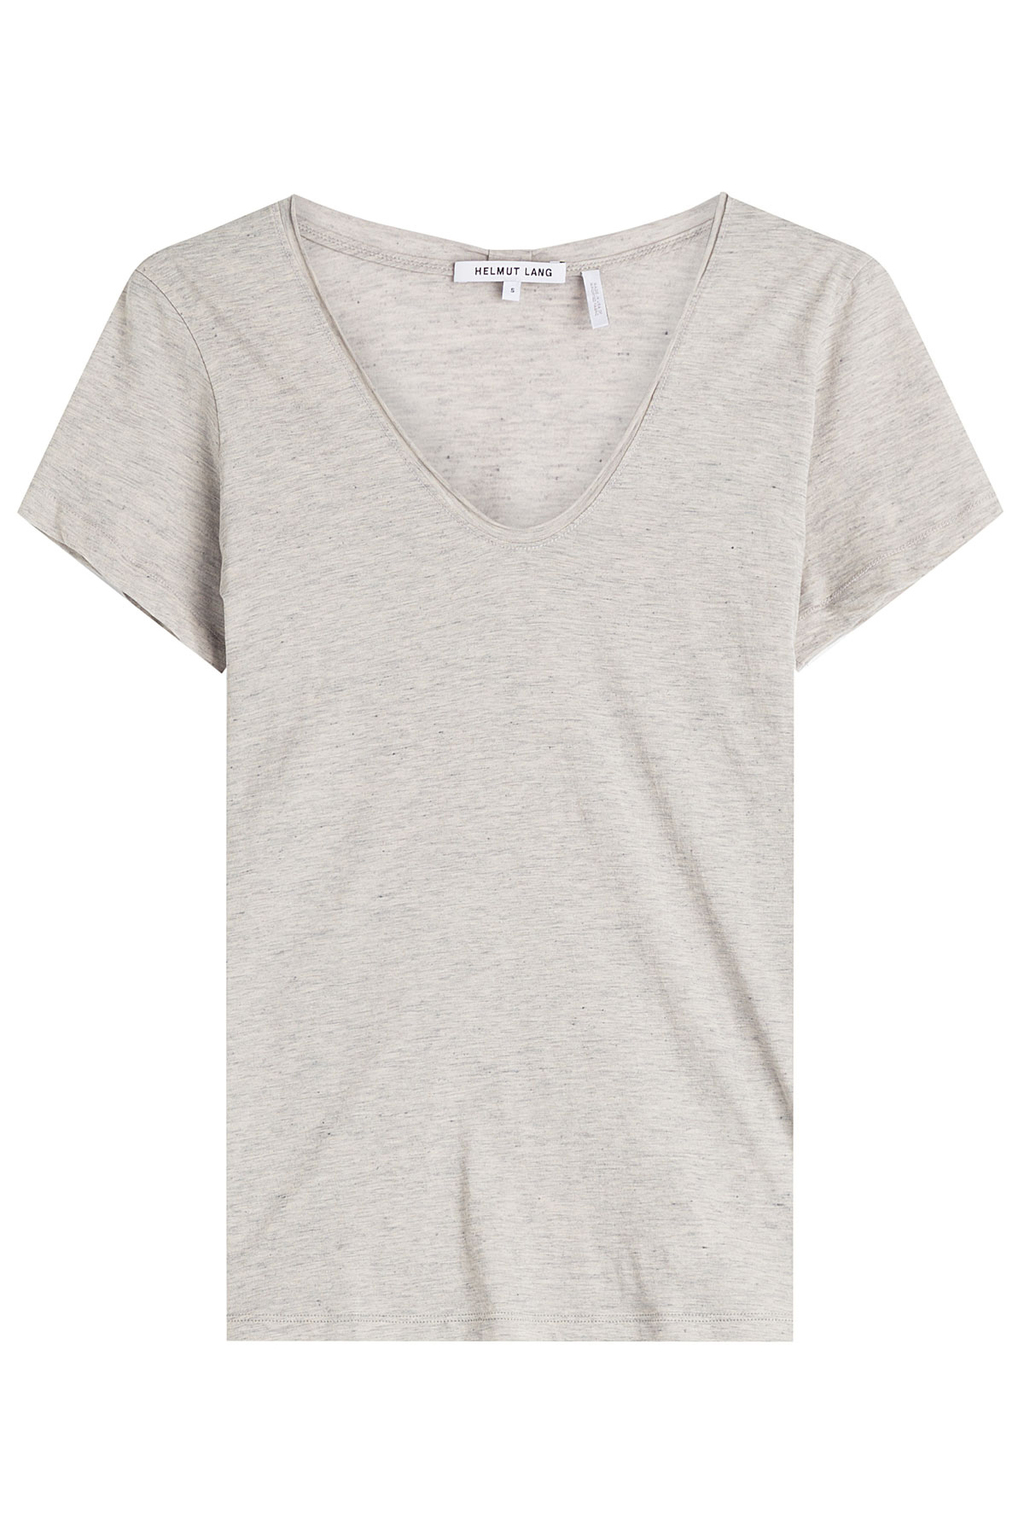 Cotton T Shirt With Cashmere Grey - neckline: v-neck; pattern: plain; style: t-shirt; predominant colour: light grey; occasions: casual; length: standard; fibres: cotton - 100%; fit: body skimming; sleeve length: short sleeve; sleeve style: standard; pattern type: fabric; texture group: jersey - stretchy/drapey; season: s/s 2016; wardrobe: basic